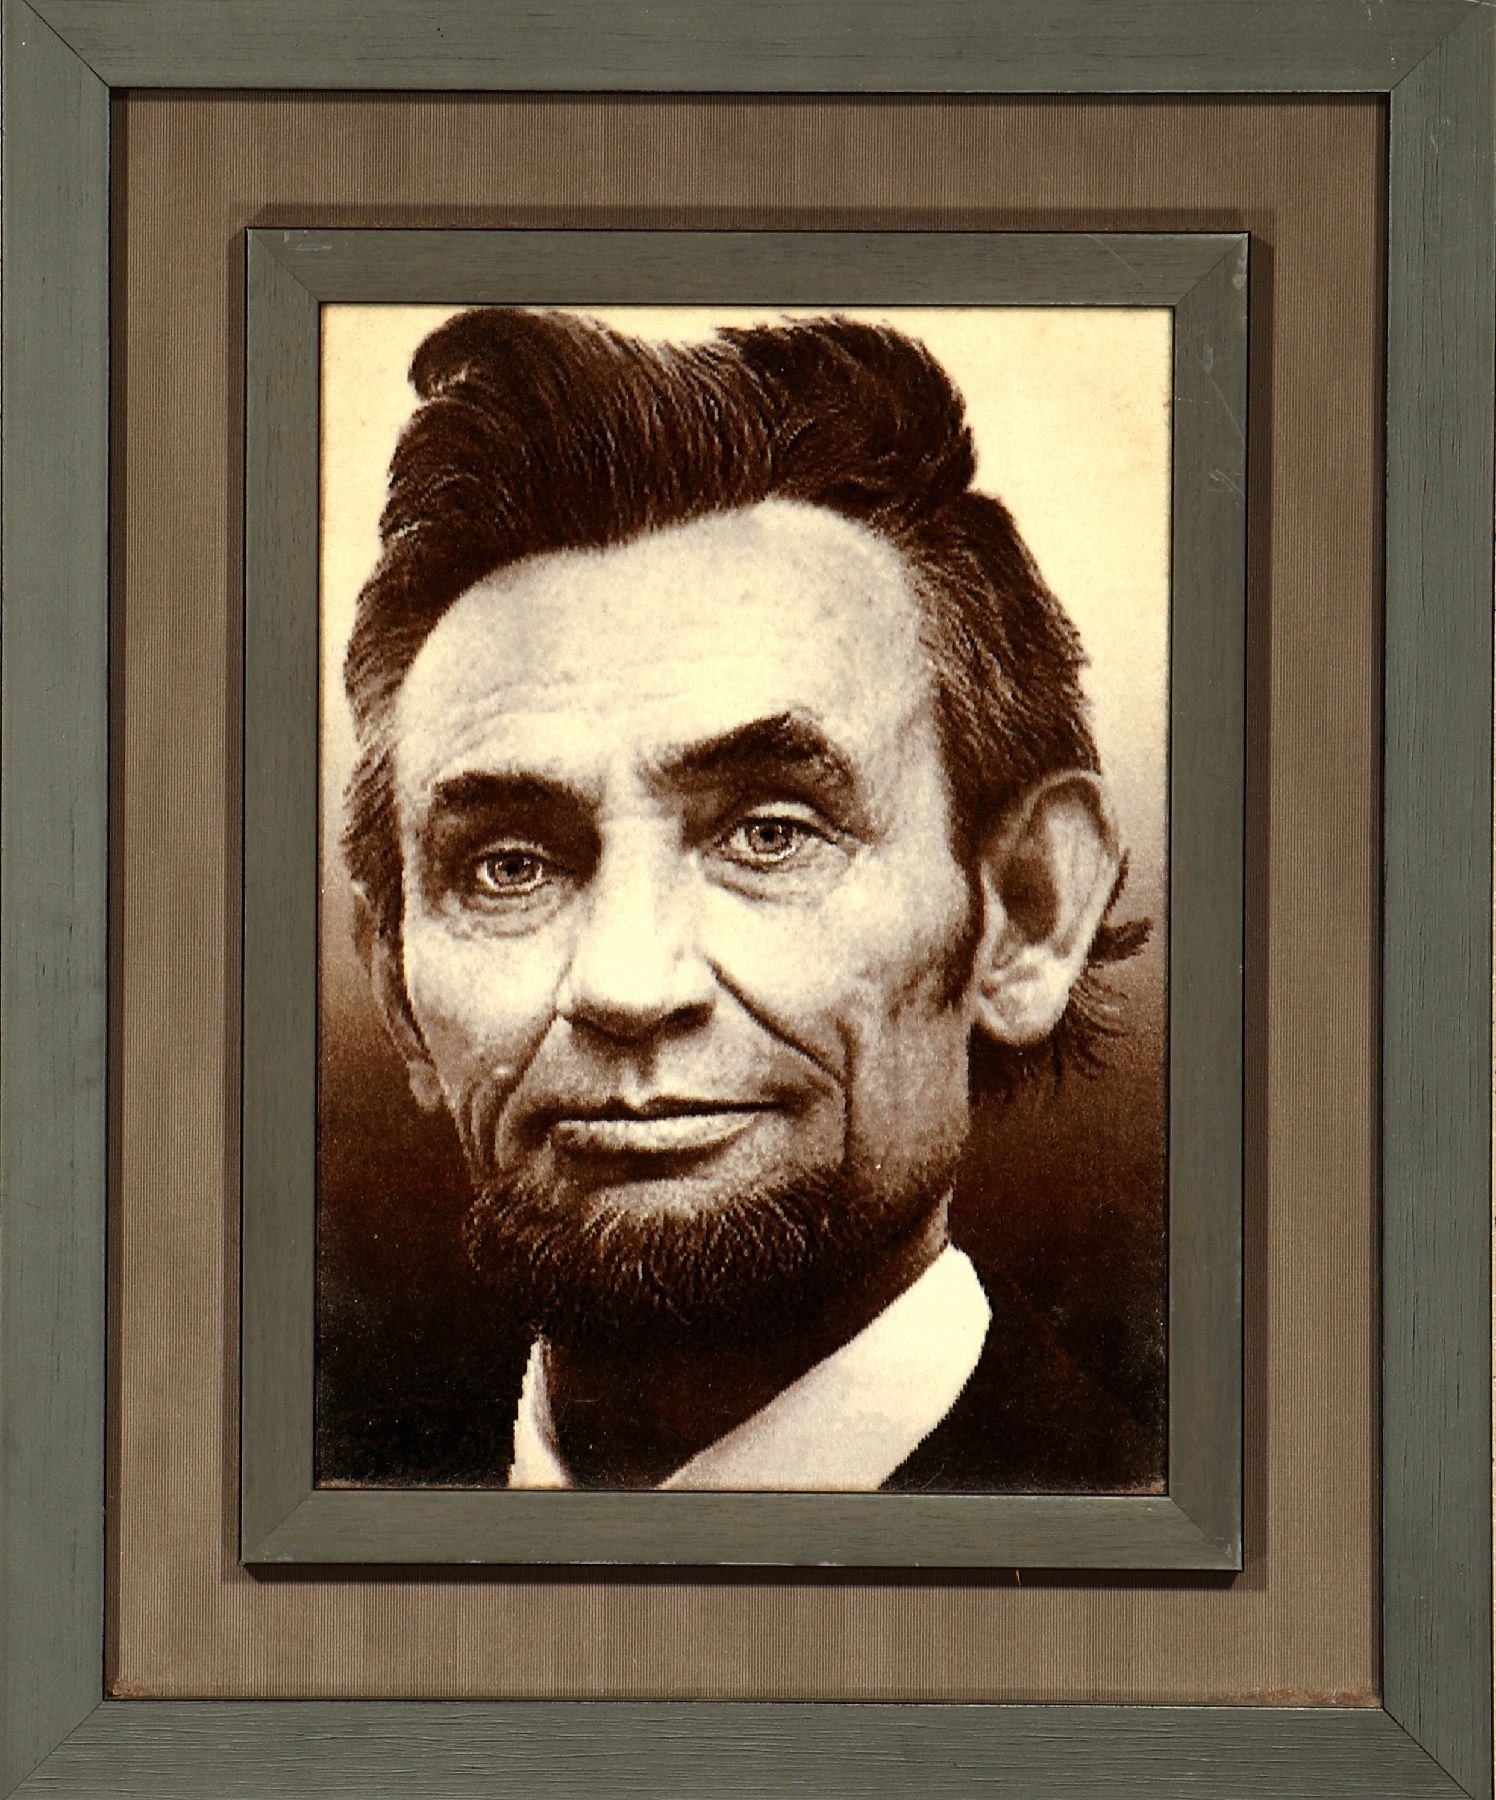 Tabriz fine (Abraham Lincoln), Persia, approx.10 years old, wool on silk, approx. 48 x 3 5 cm,